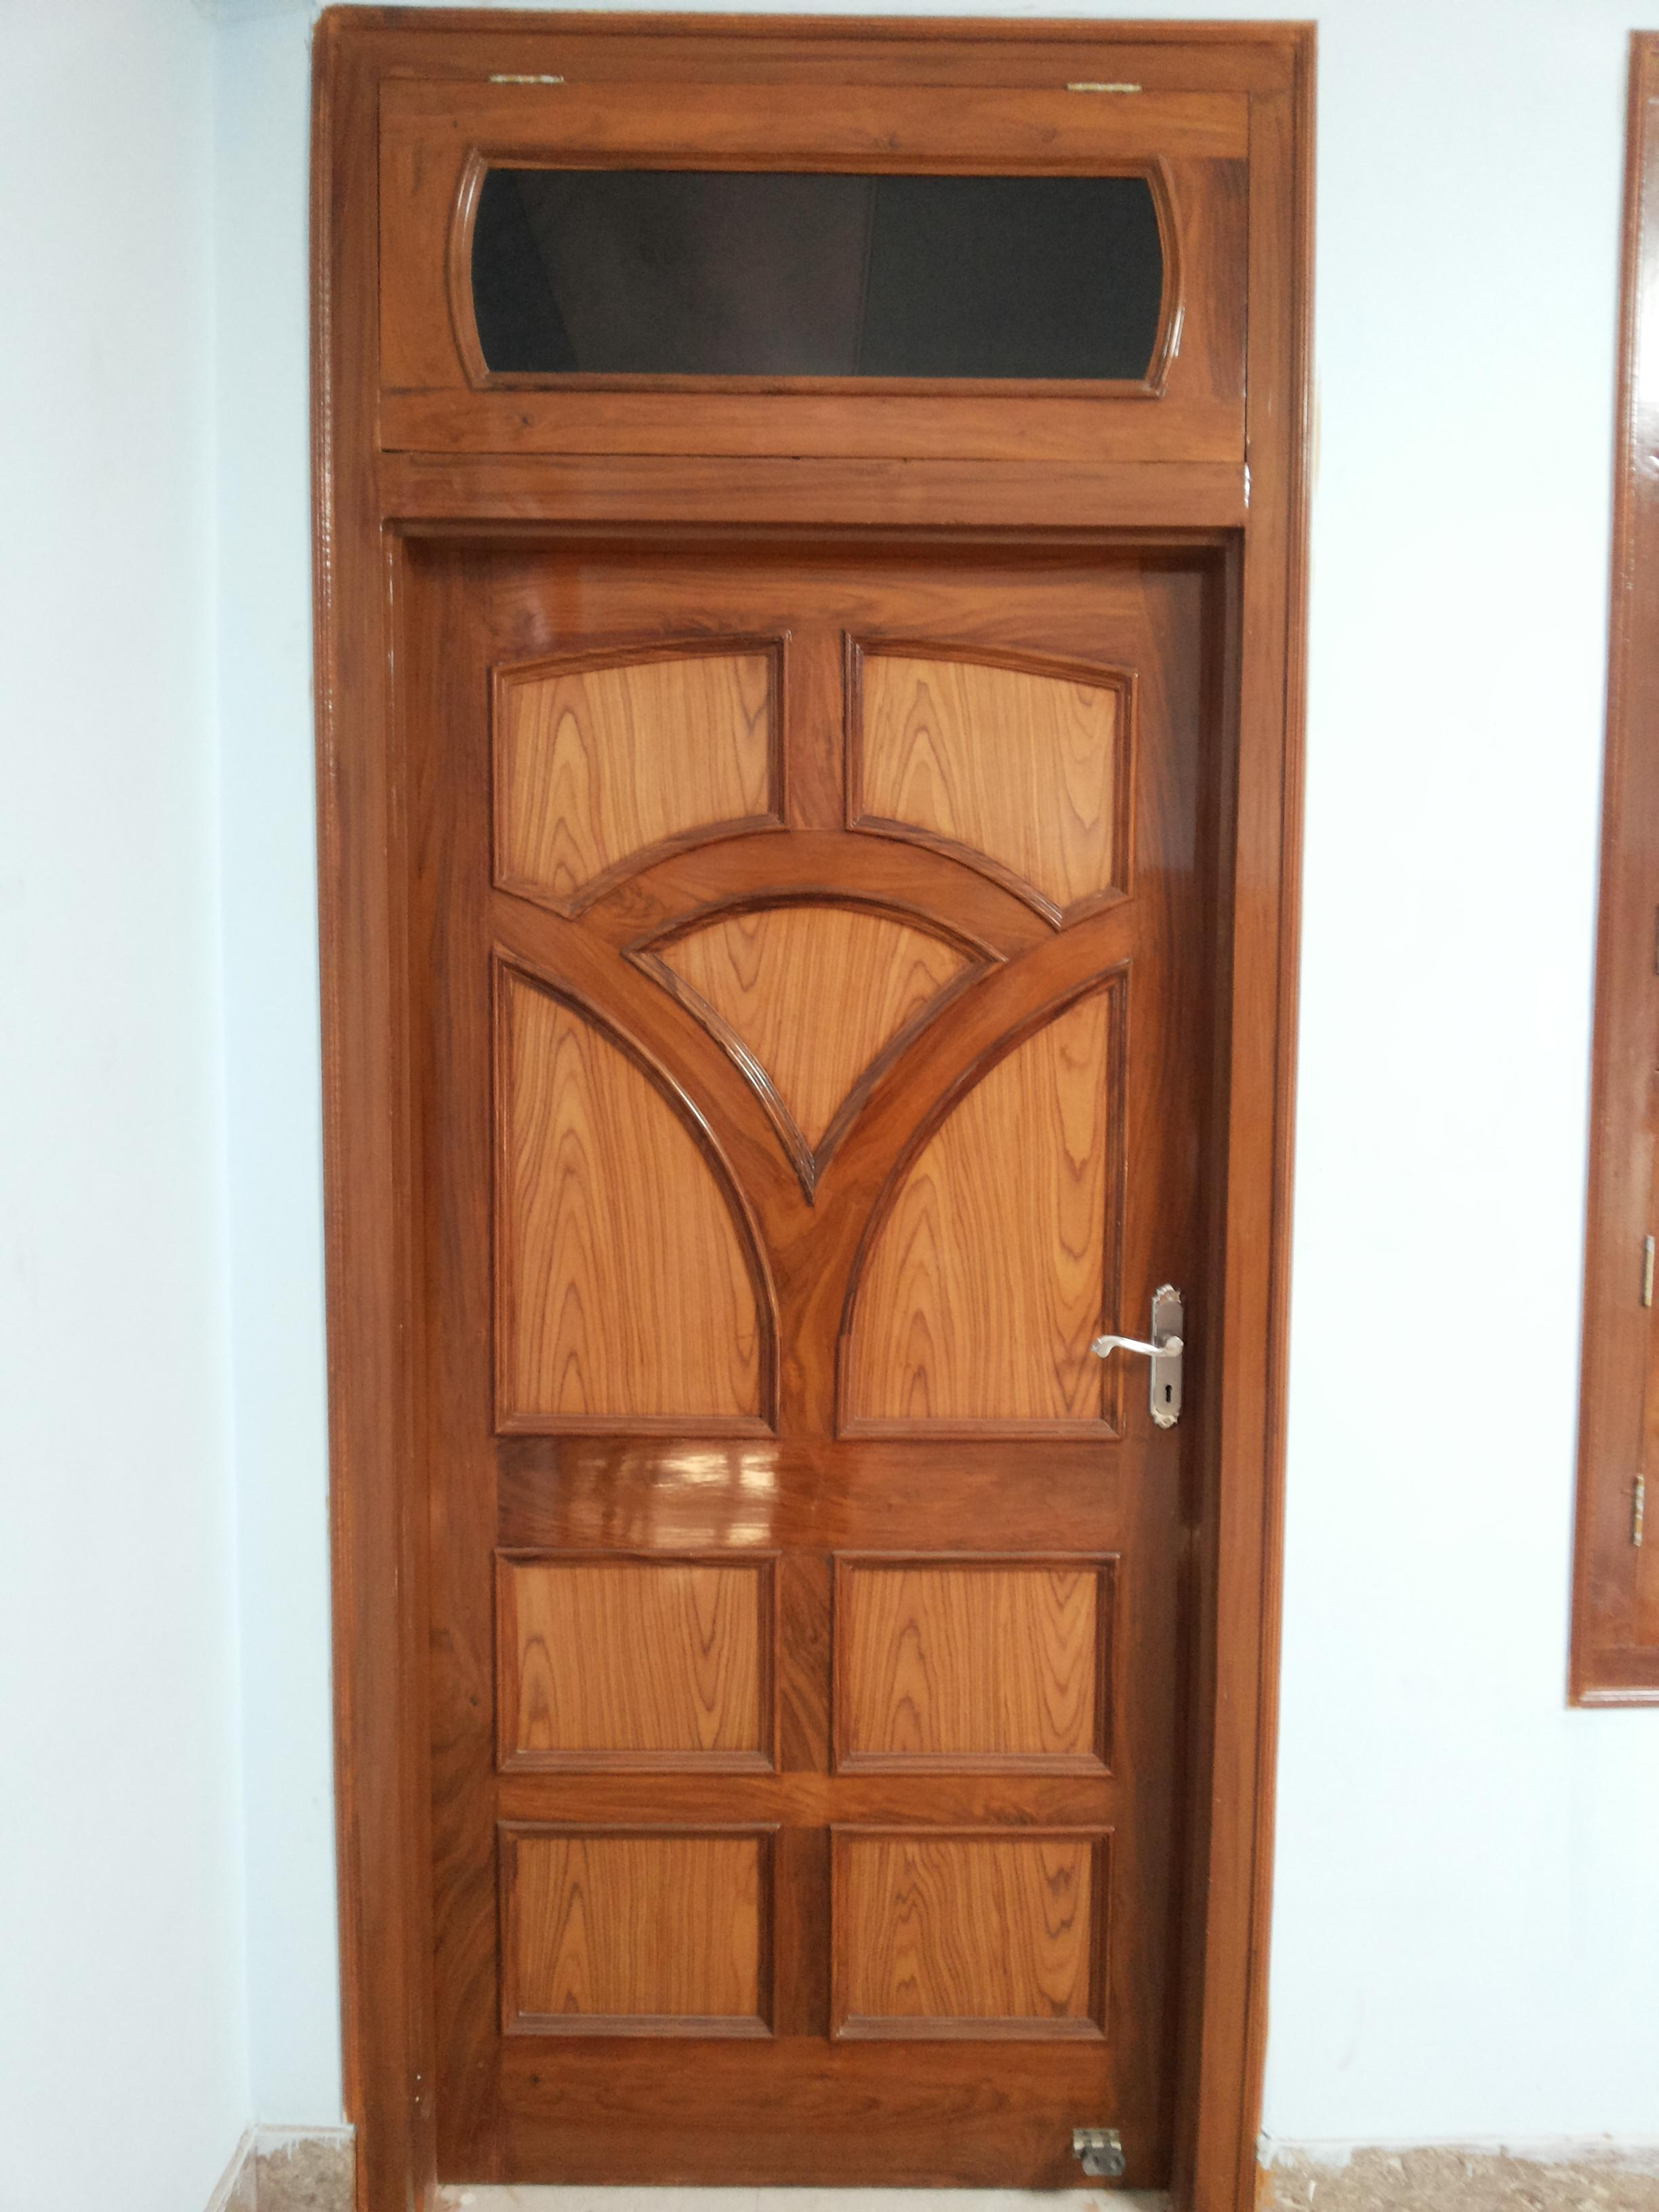 Single panel interior wood door design gharexpert for Wood door design latest